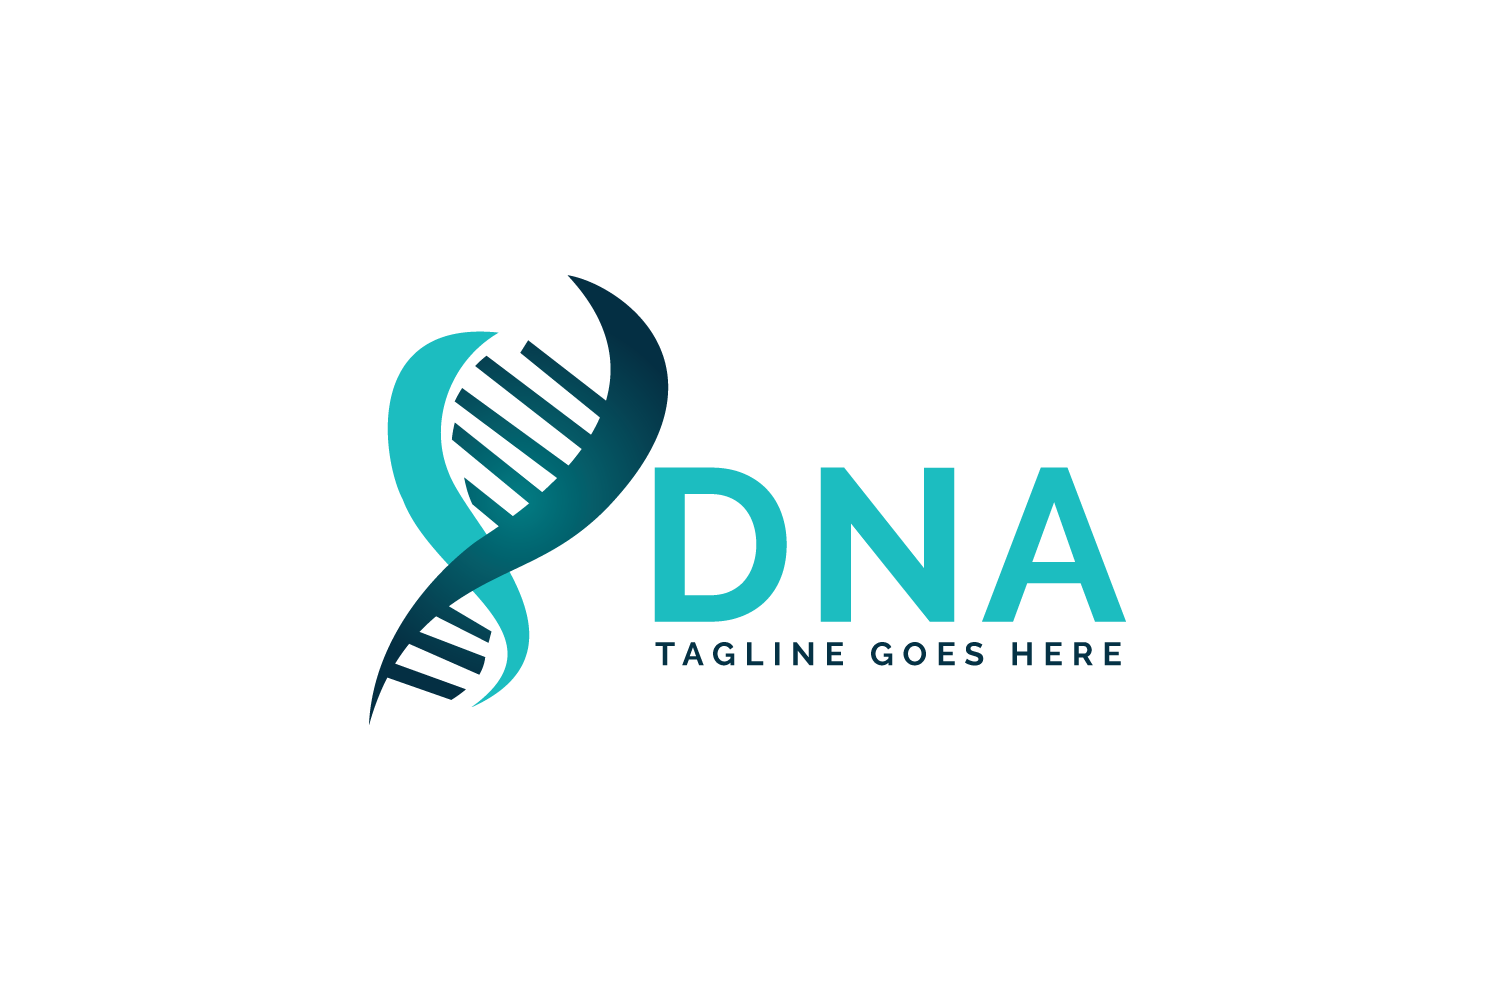 Human DNA and genetic logo design. example image 2